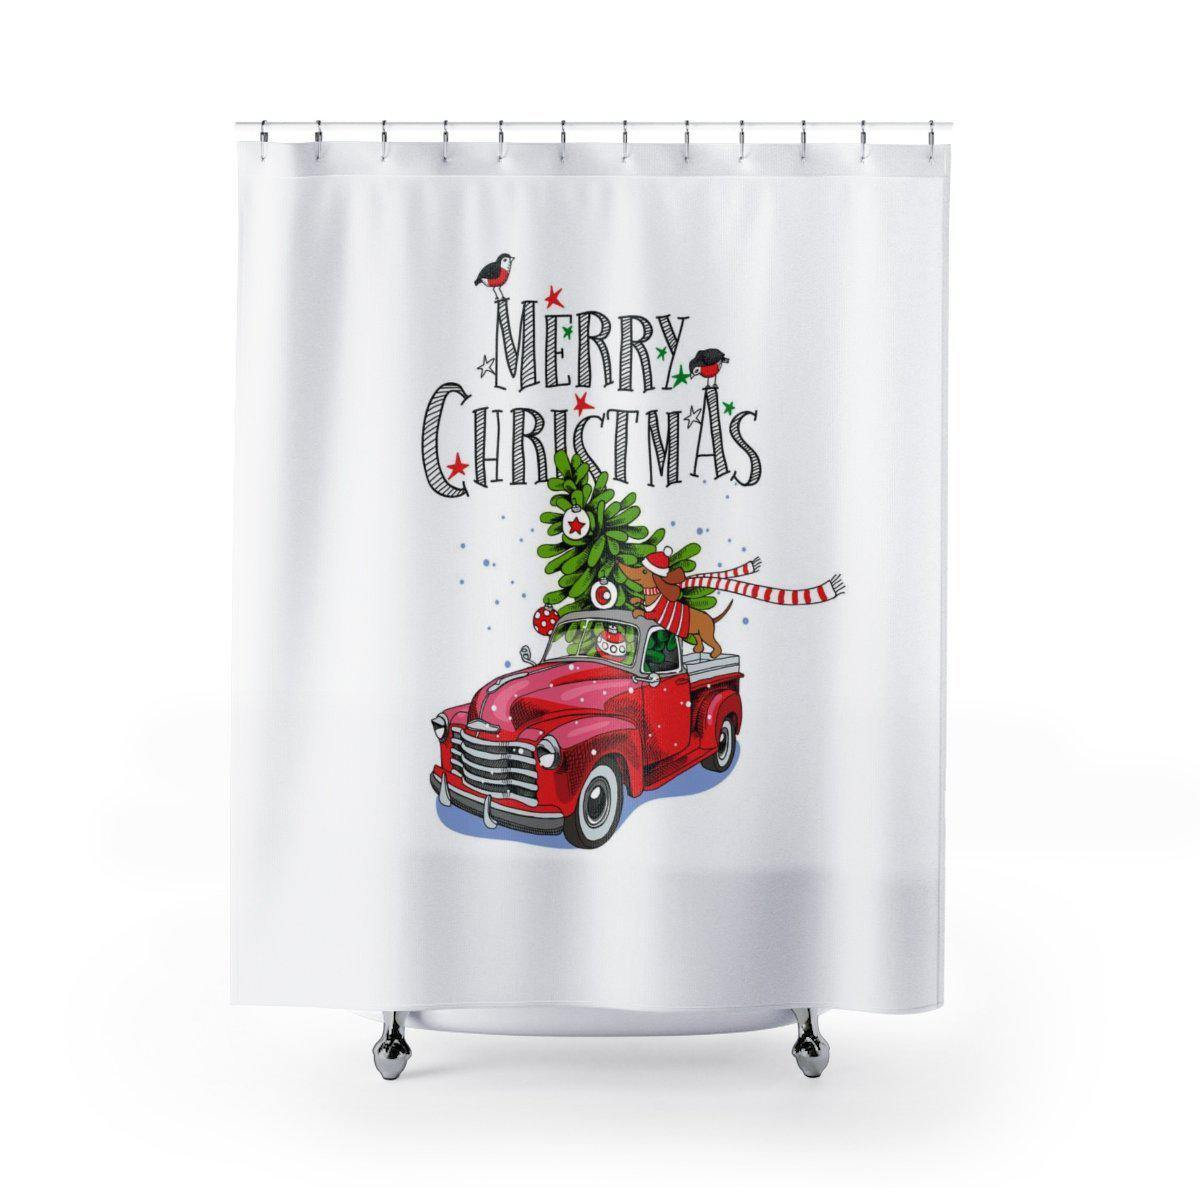 Vintage Car Christmas Shower Curtain-W.FRANCIS